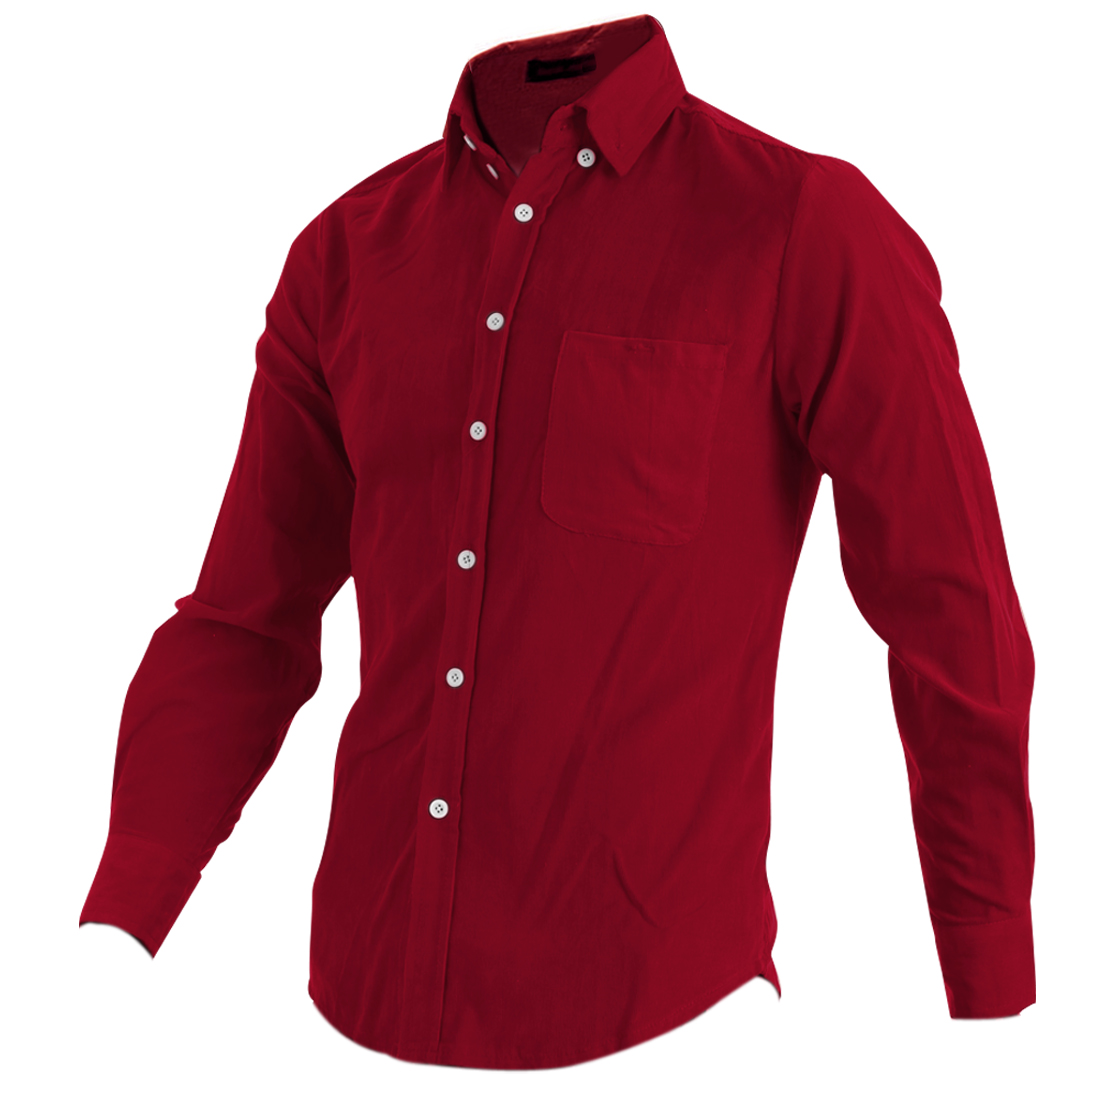 Mens Fashion Warm Red Point Collar Long Sleeve Button Down Shirt M